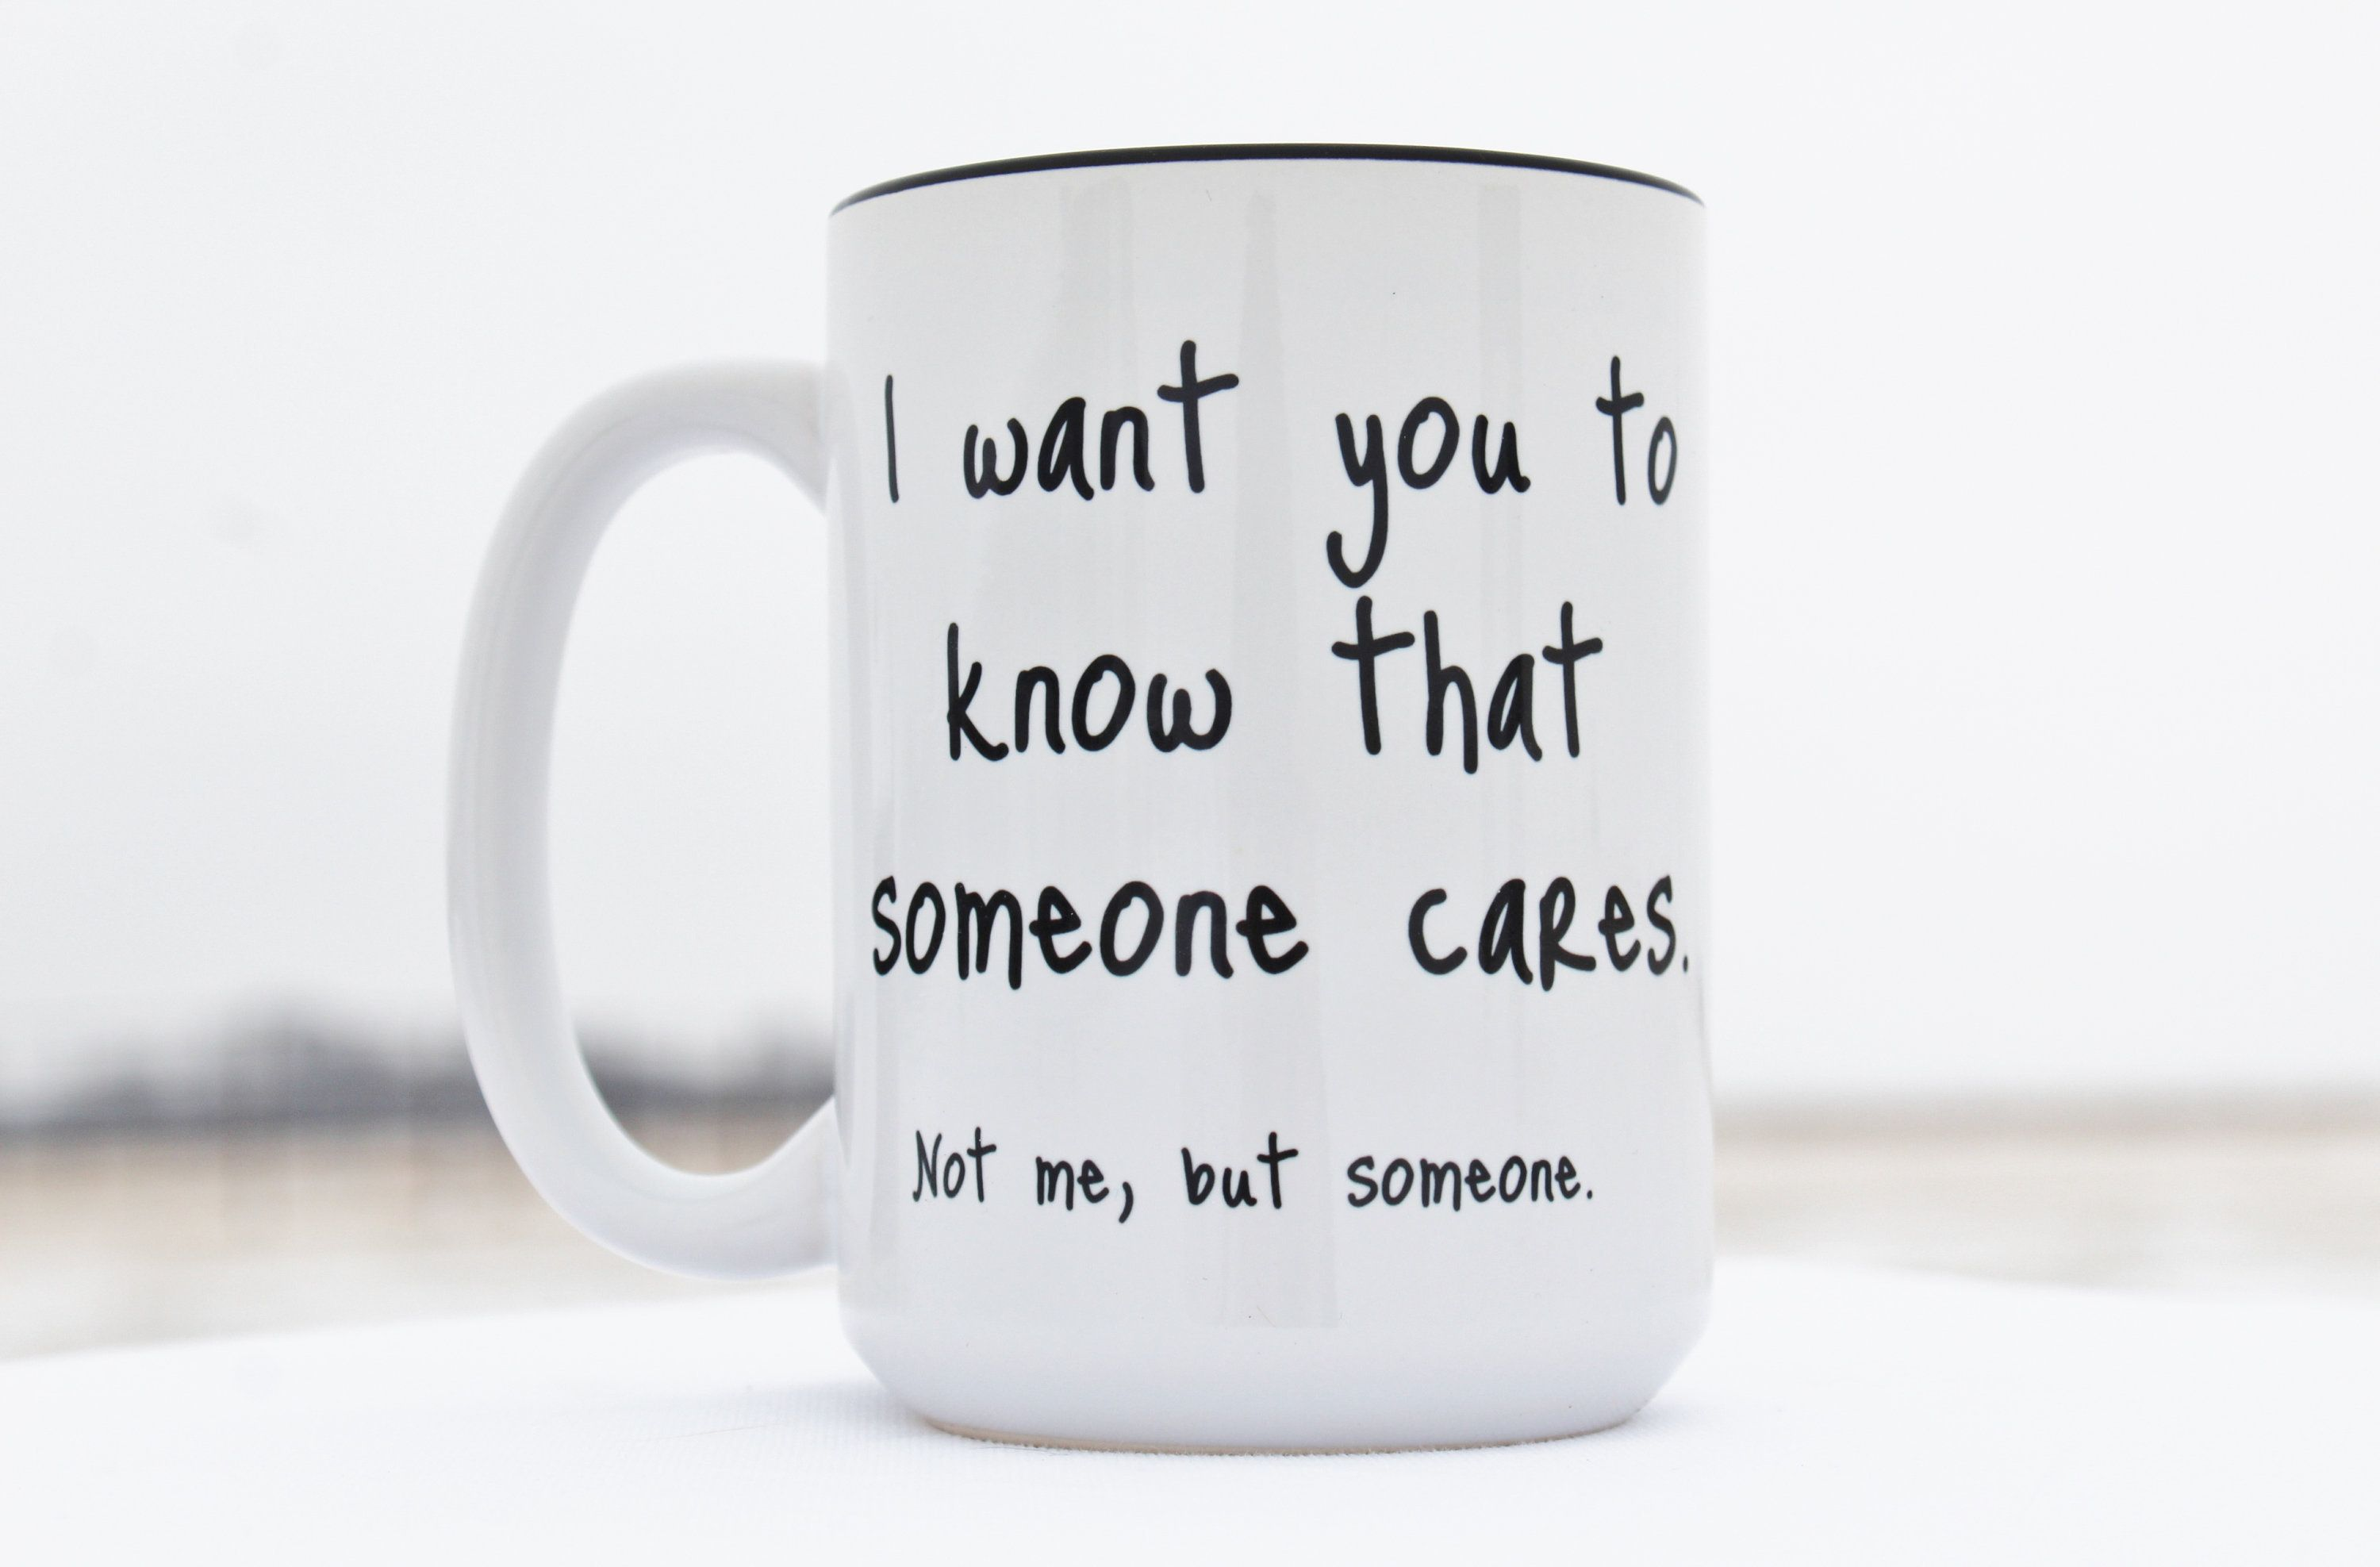 Funny Coffee Mugs,Funny Coffee Cup,I Want You To Know That Someone Cares Not Me,Funny Coffee Mugs for Women,Funny Coffee Mugs Work,Funny Mug